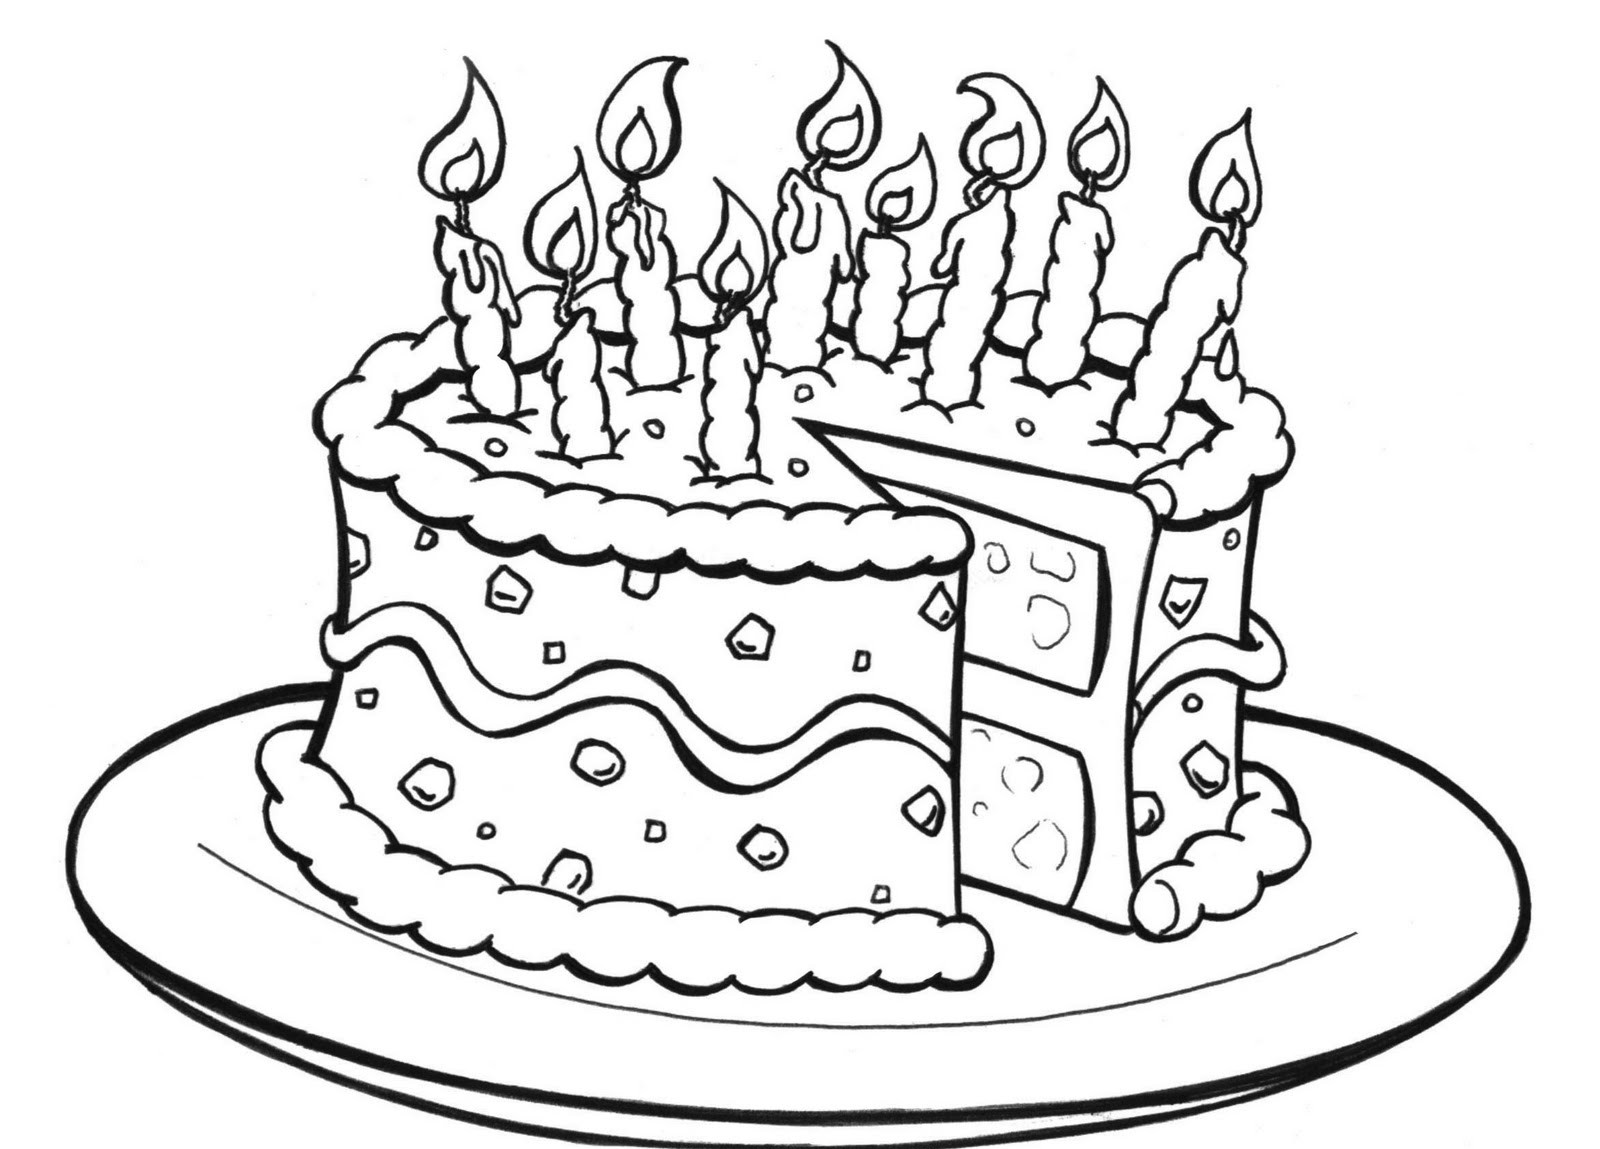 Cake Images Print : Free Printable Birthday Cake Coloring Pages For Kids